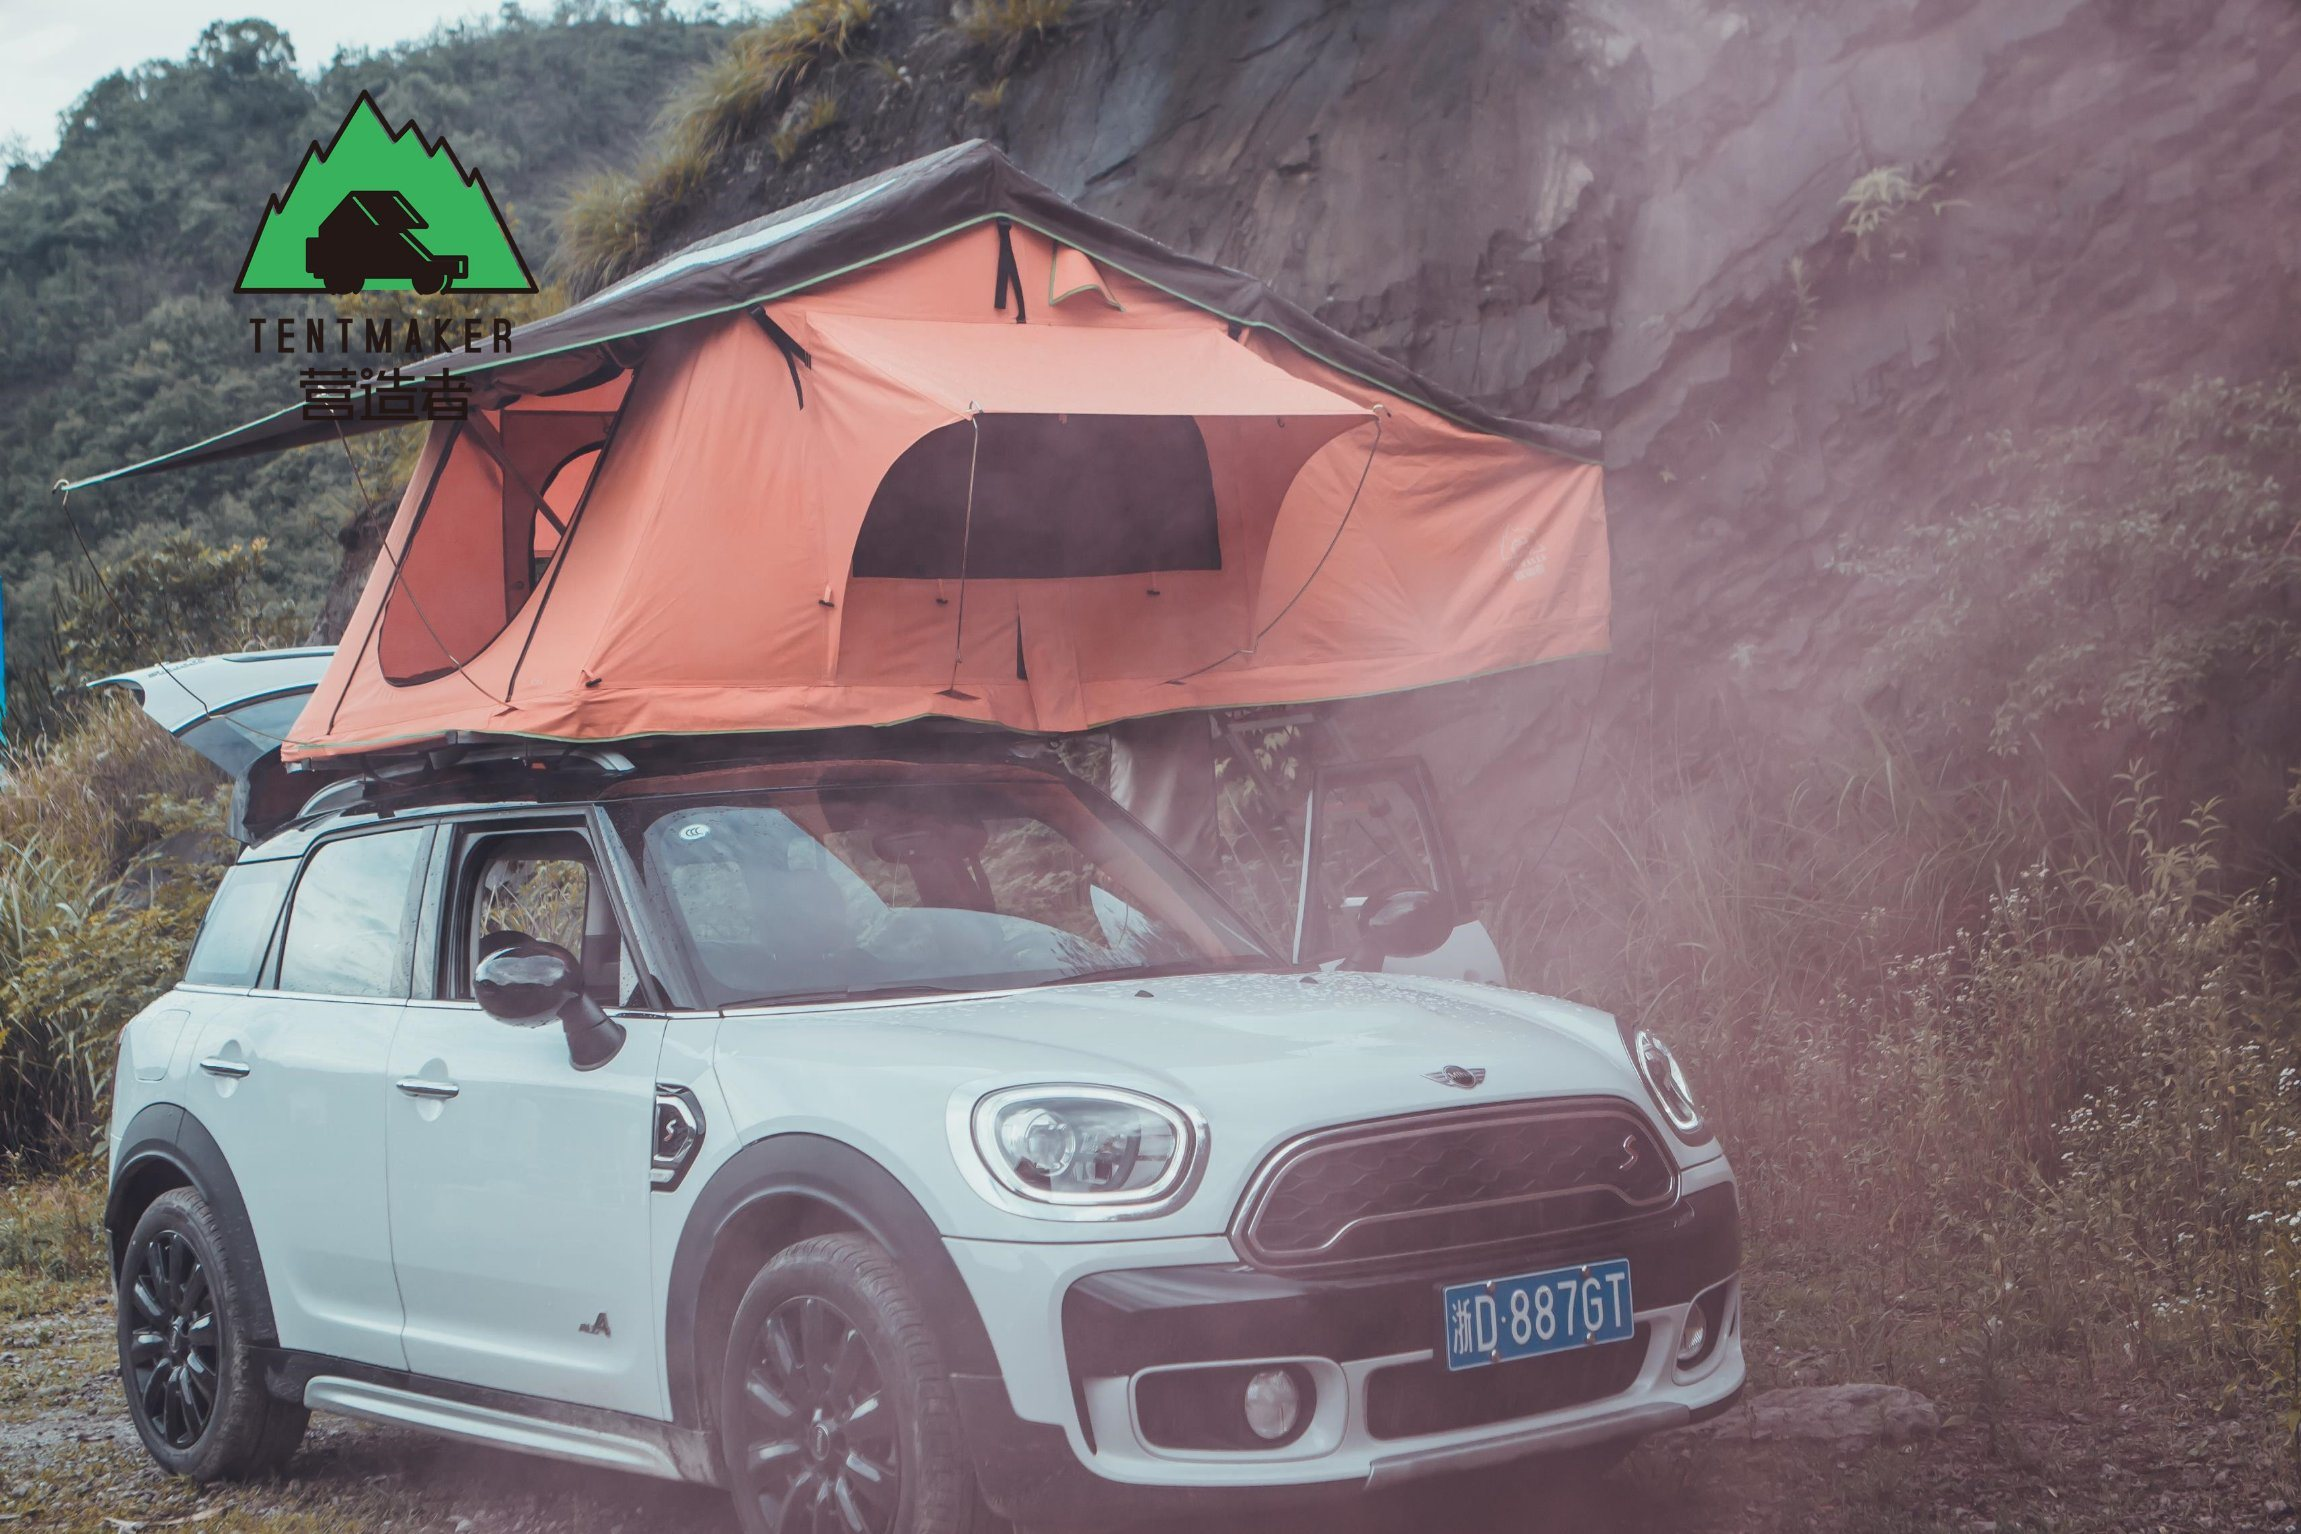 China Auto Roof Top Tent Camping Outdoor Gear Tent Photos